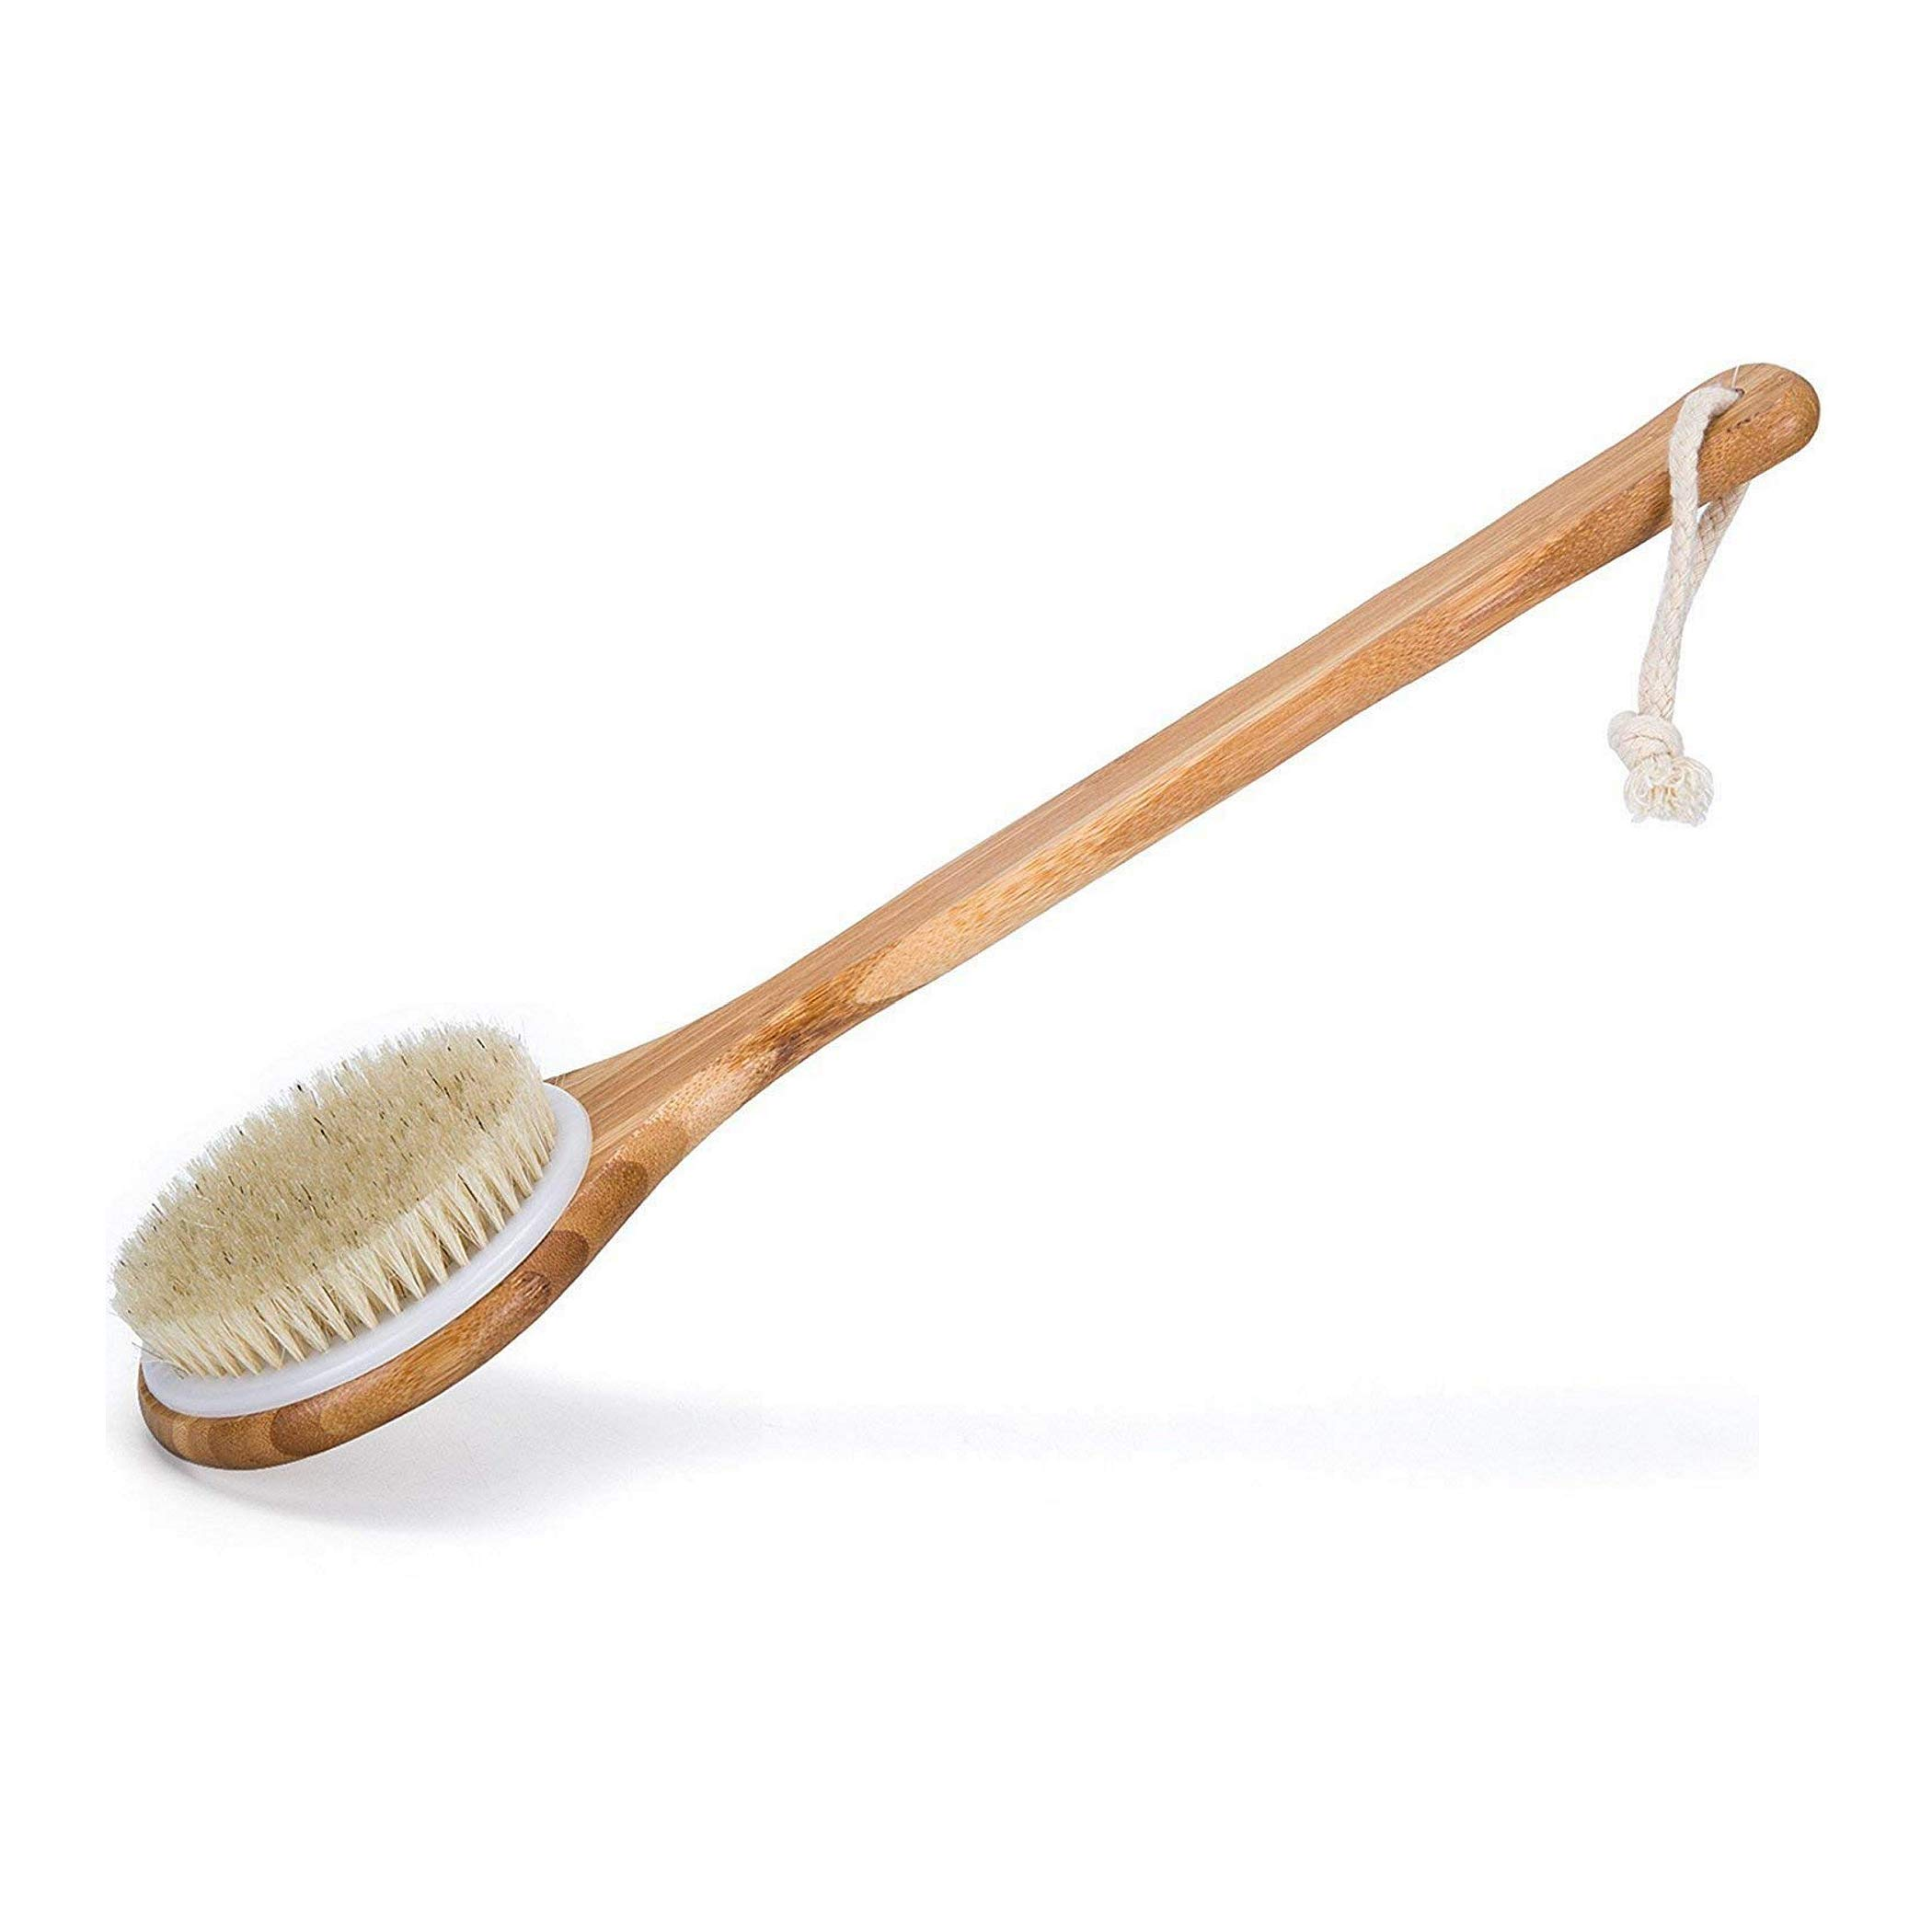 OYMI Best Bath Dry Body Brush – Natural Bristles Shower Back Scrubber With Long Handle for Cellulite, Exfoliation, Detox